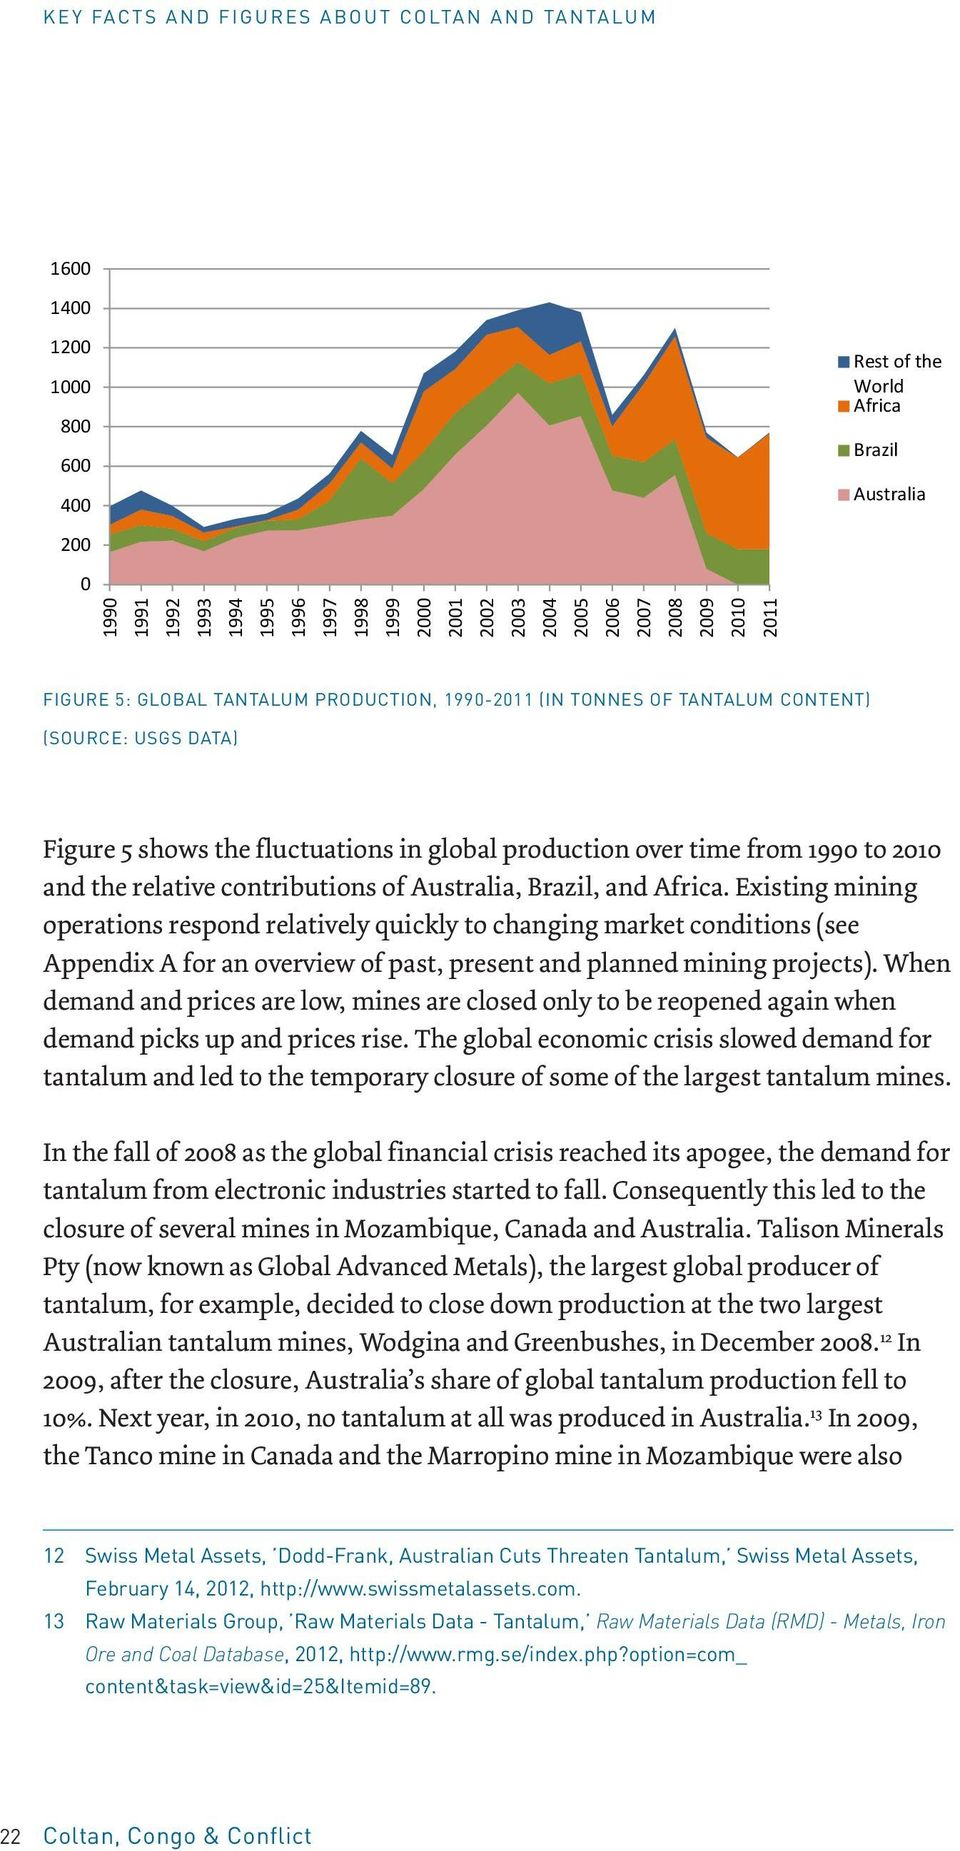 CONTENT) (Source: (SOURCE: USGS USGS data) DATA) 700 Figure 600 5 shows the fluctuations in global production over time from 1990 to 2010 and the relative contributions of Australia, Brazil, and